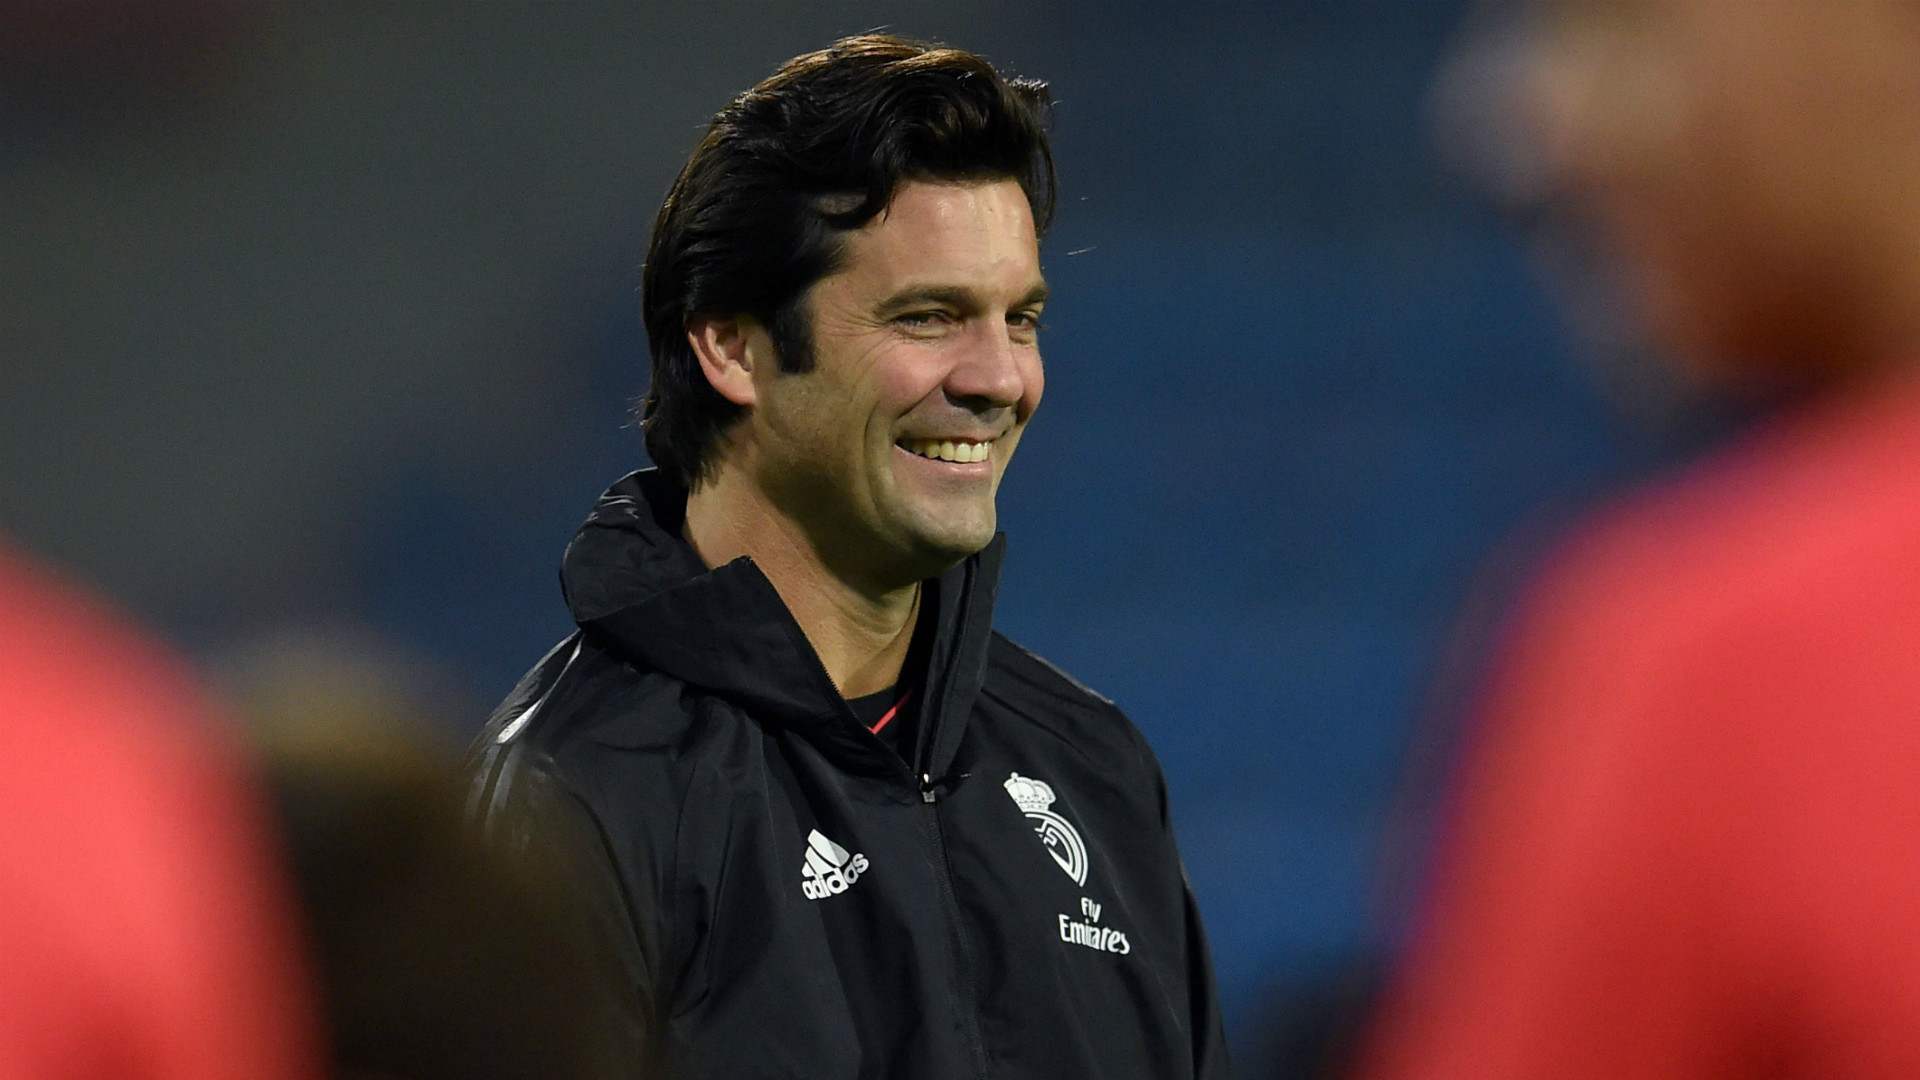 Real Madrid confirm Santiago Solari as manager